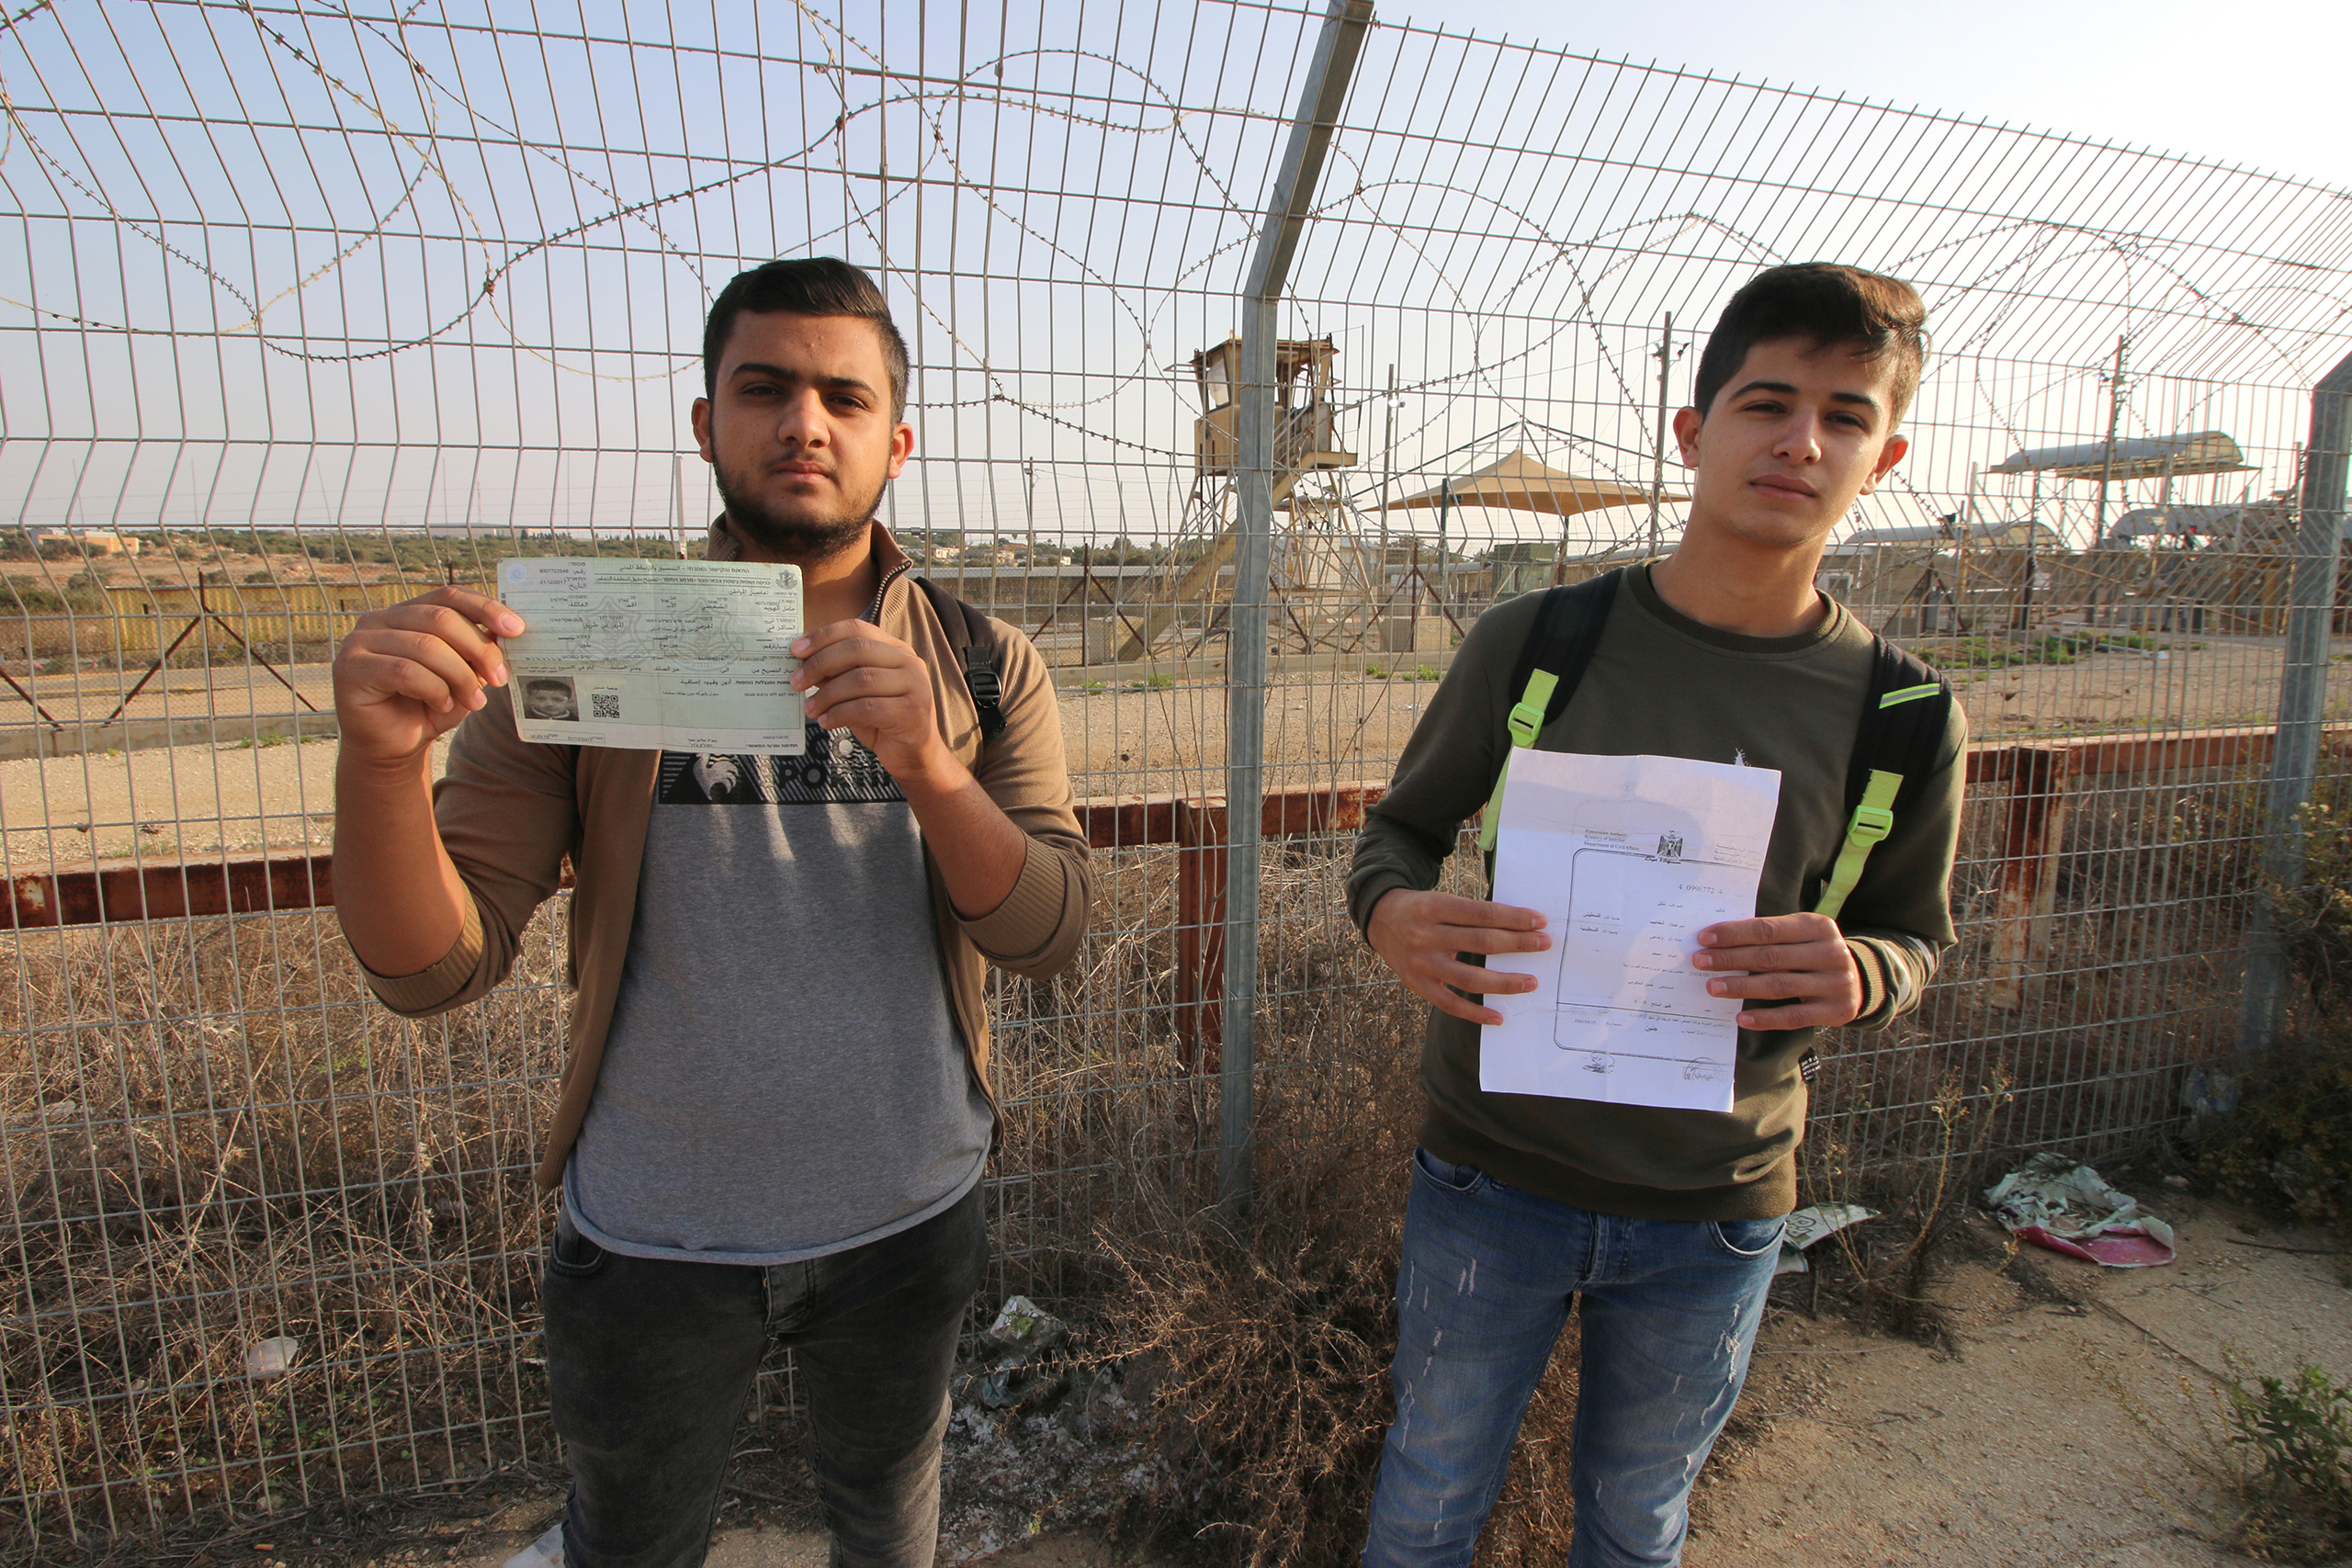 Palestinian students show a military permit (left) and a birth certificate (right) on November 07, 2019 at the Israeli military checkpoint near Tura. The documents are needed to cross the Israeli military checkpoint every morning on their way to school in Tura Al-Gharbiya village. (Photo: DCIP / Ahmad Al-Bazz)